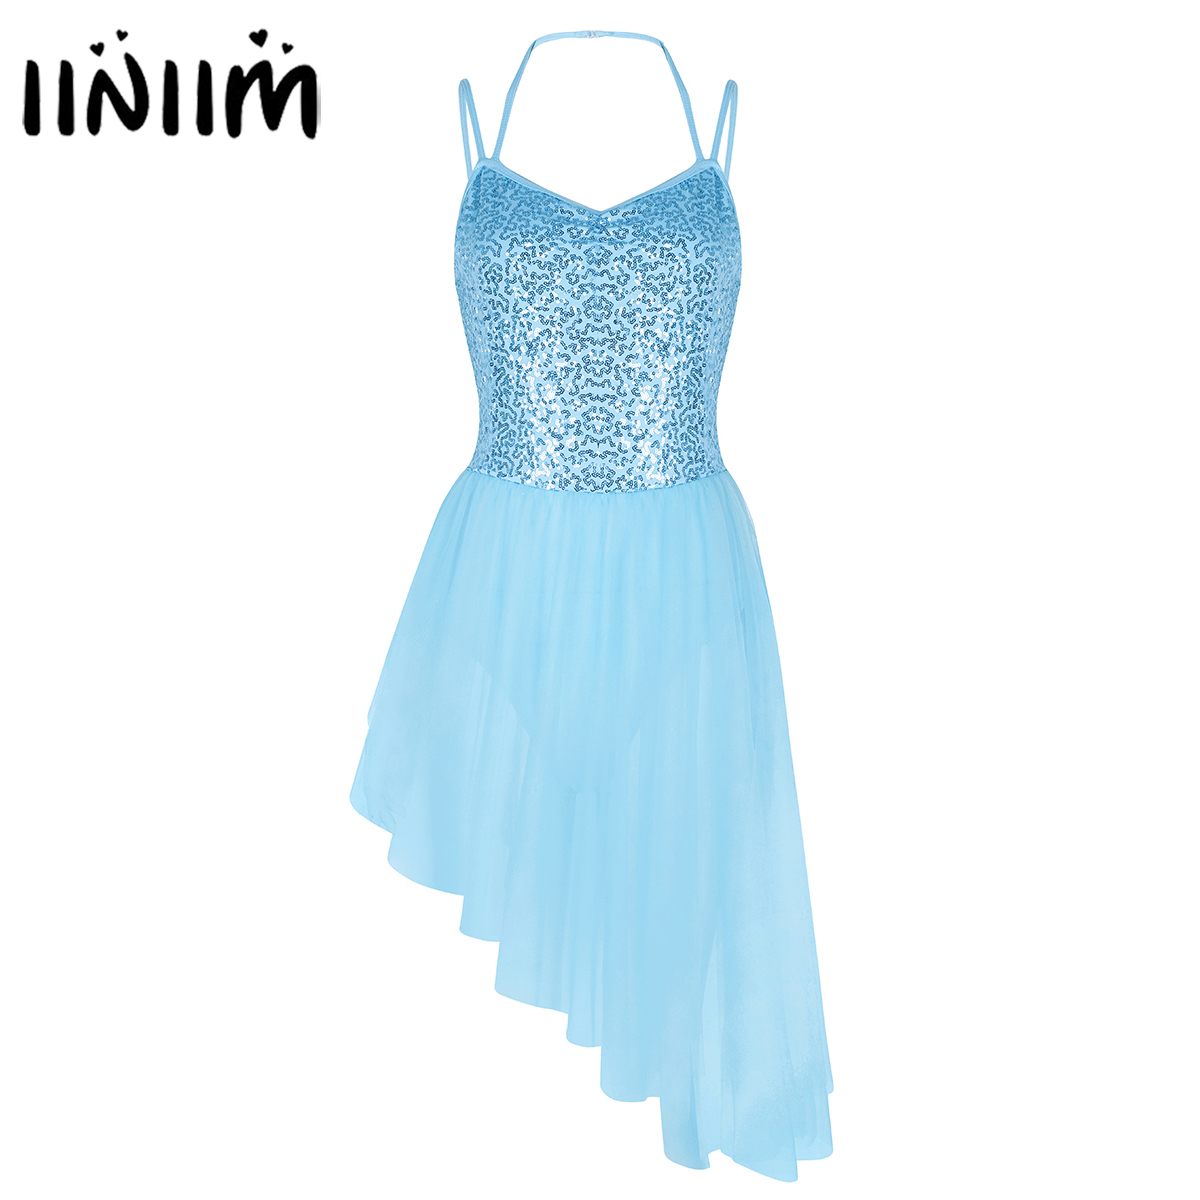 iiniim Womens Femme Ballet Tutu Dress Spaghetti Straps Sequins Irregular High Low Dress Dancewear Gymnastics Leotard for Adult